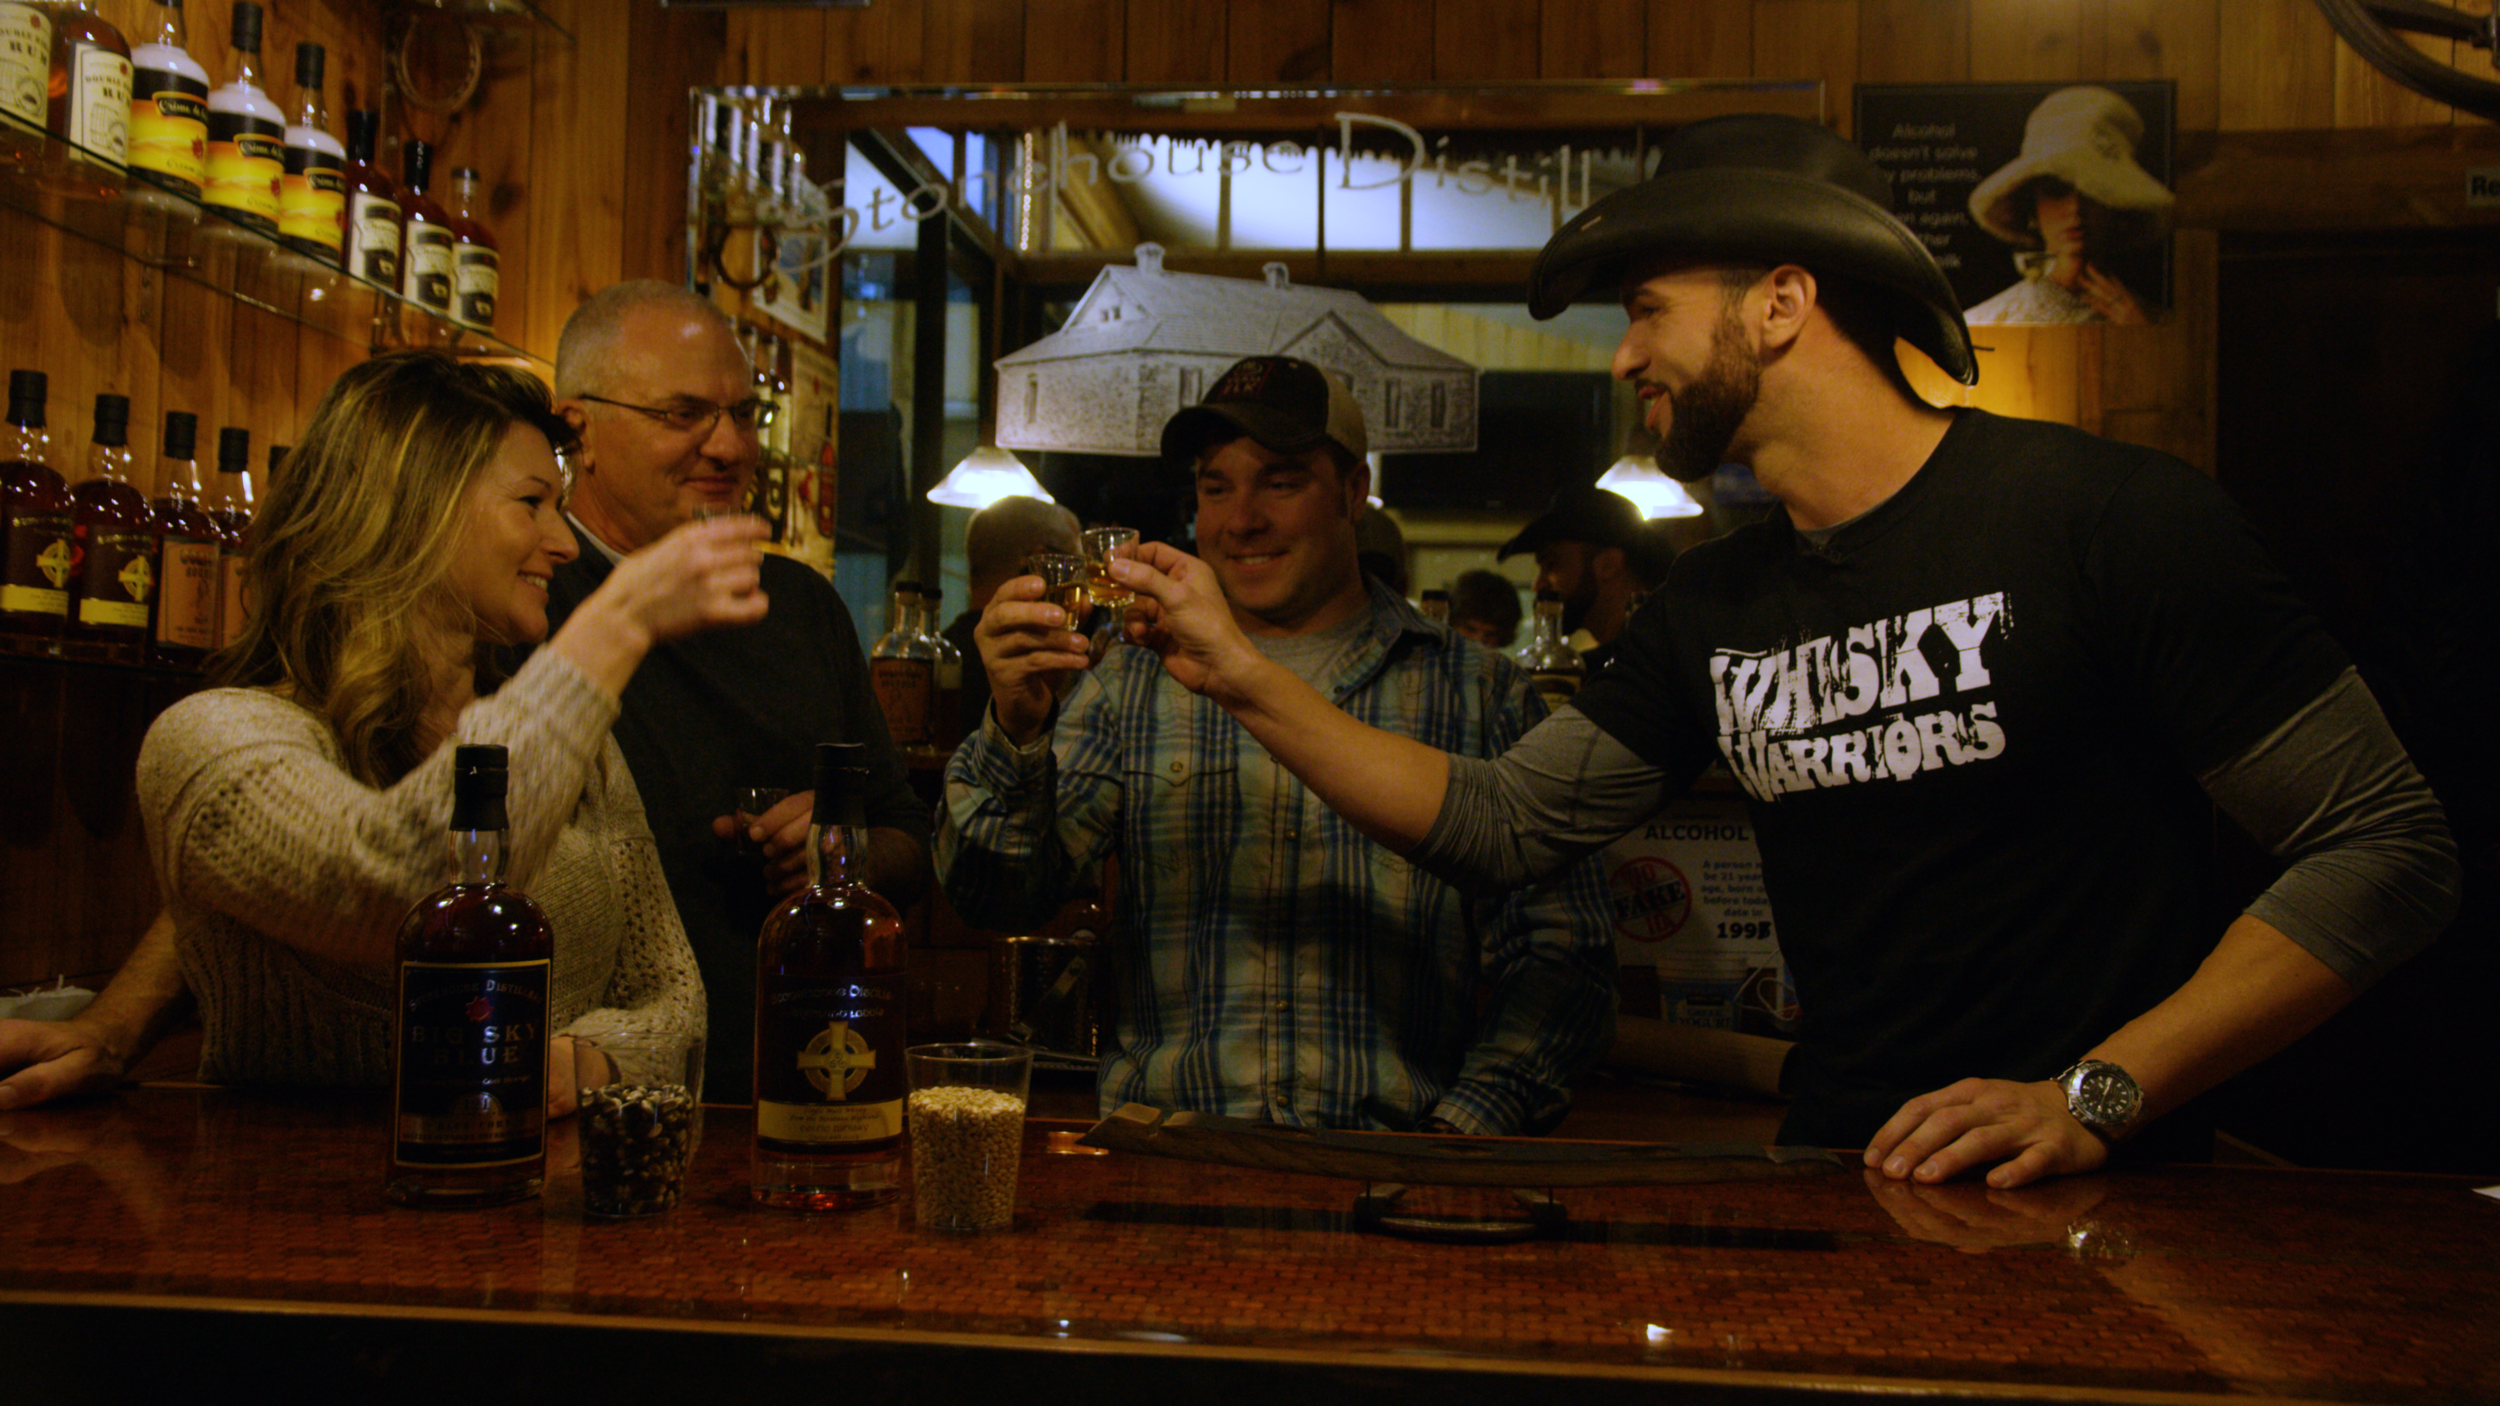 WhiskeyWarriors_Stonehouse_Still1 (1).png